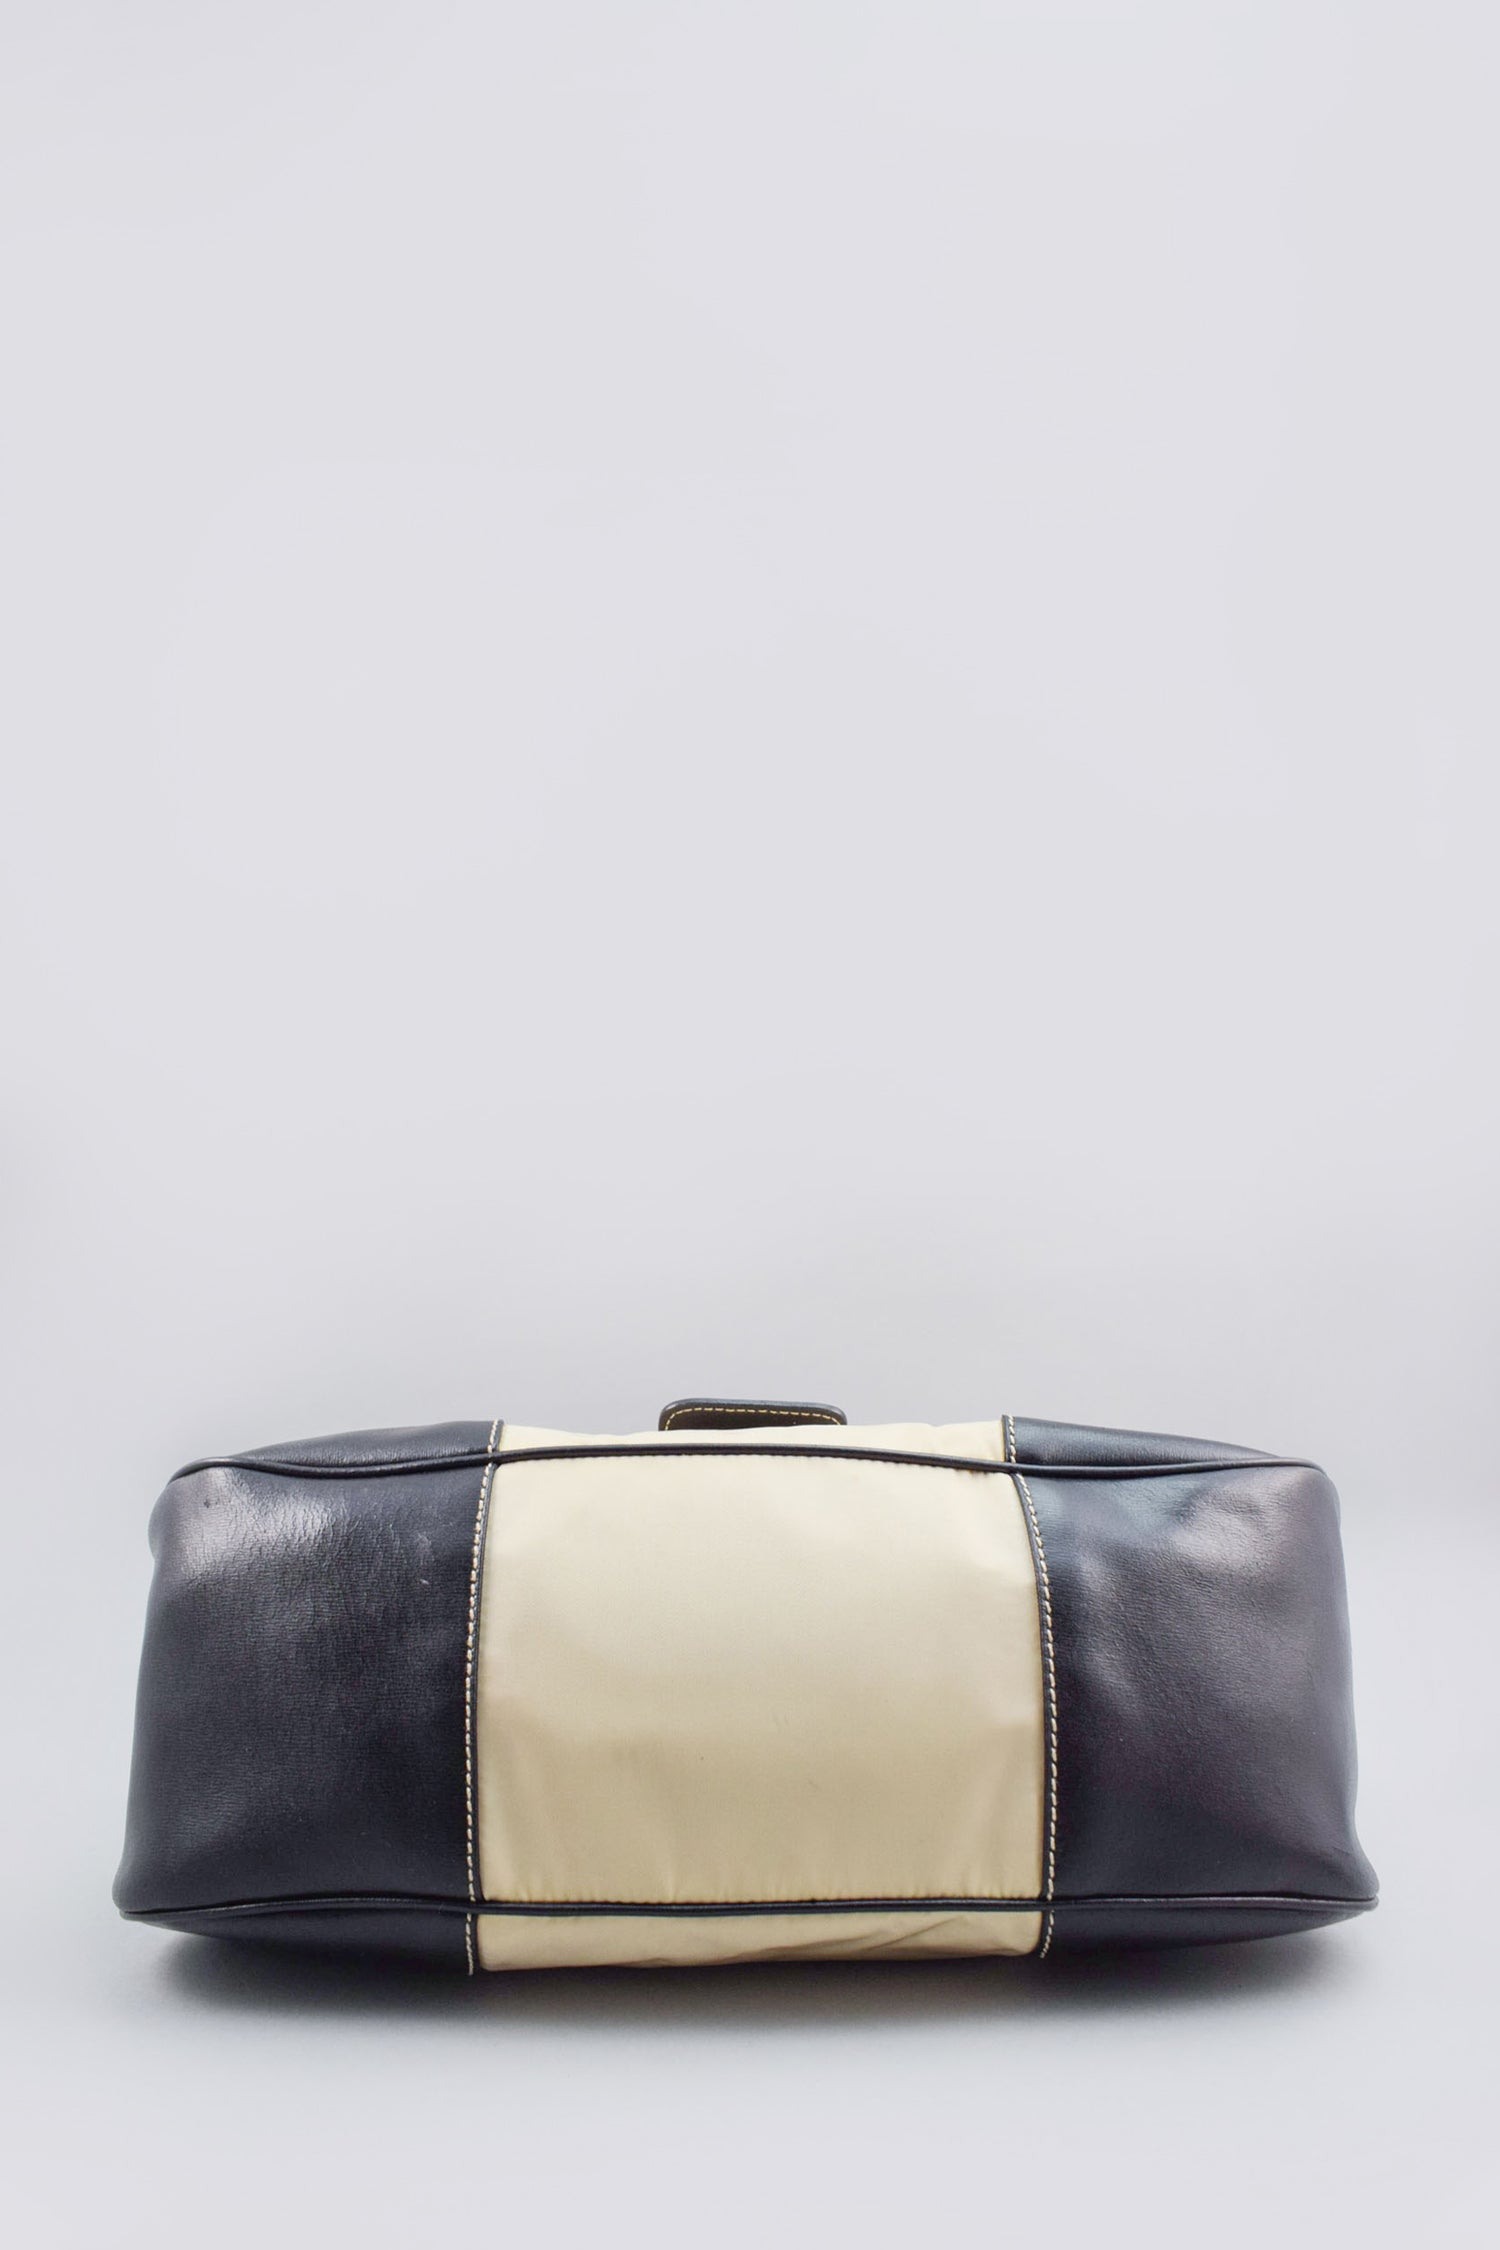 Prada Cream Leather-Trimmed Nylon Top Handle Bag